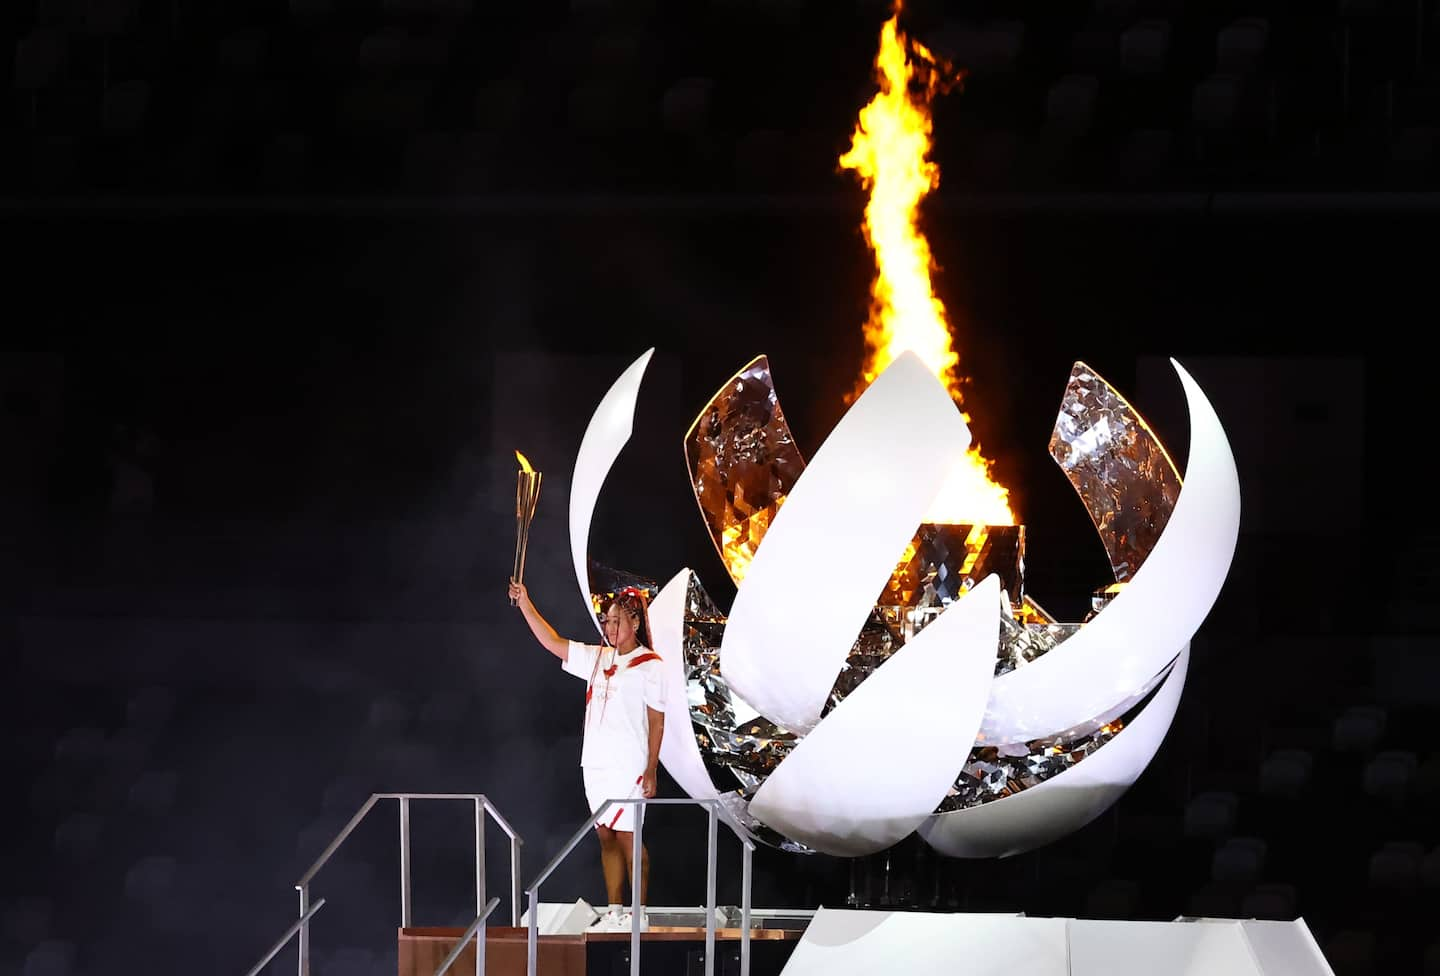 Review: 2020 Olympics kicked off with botched 'Imagine' and lackluster Opening Ceremonies